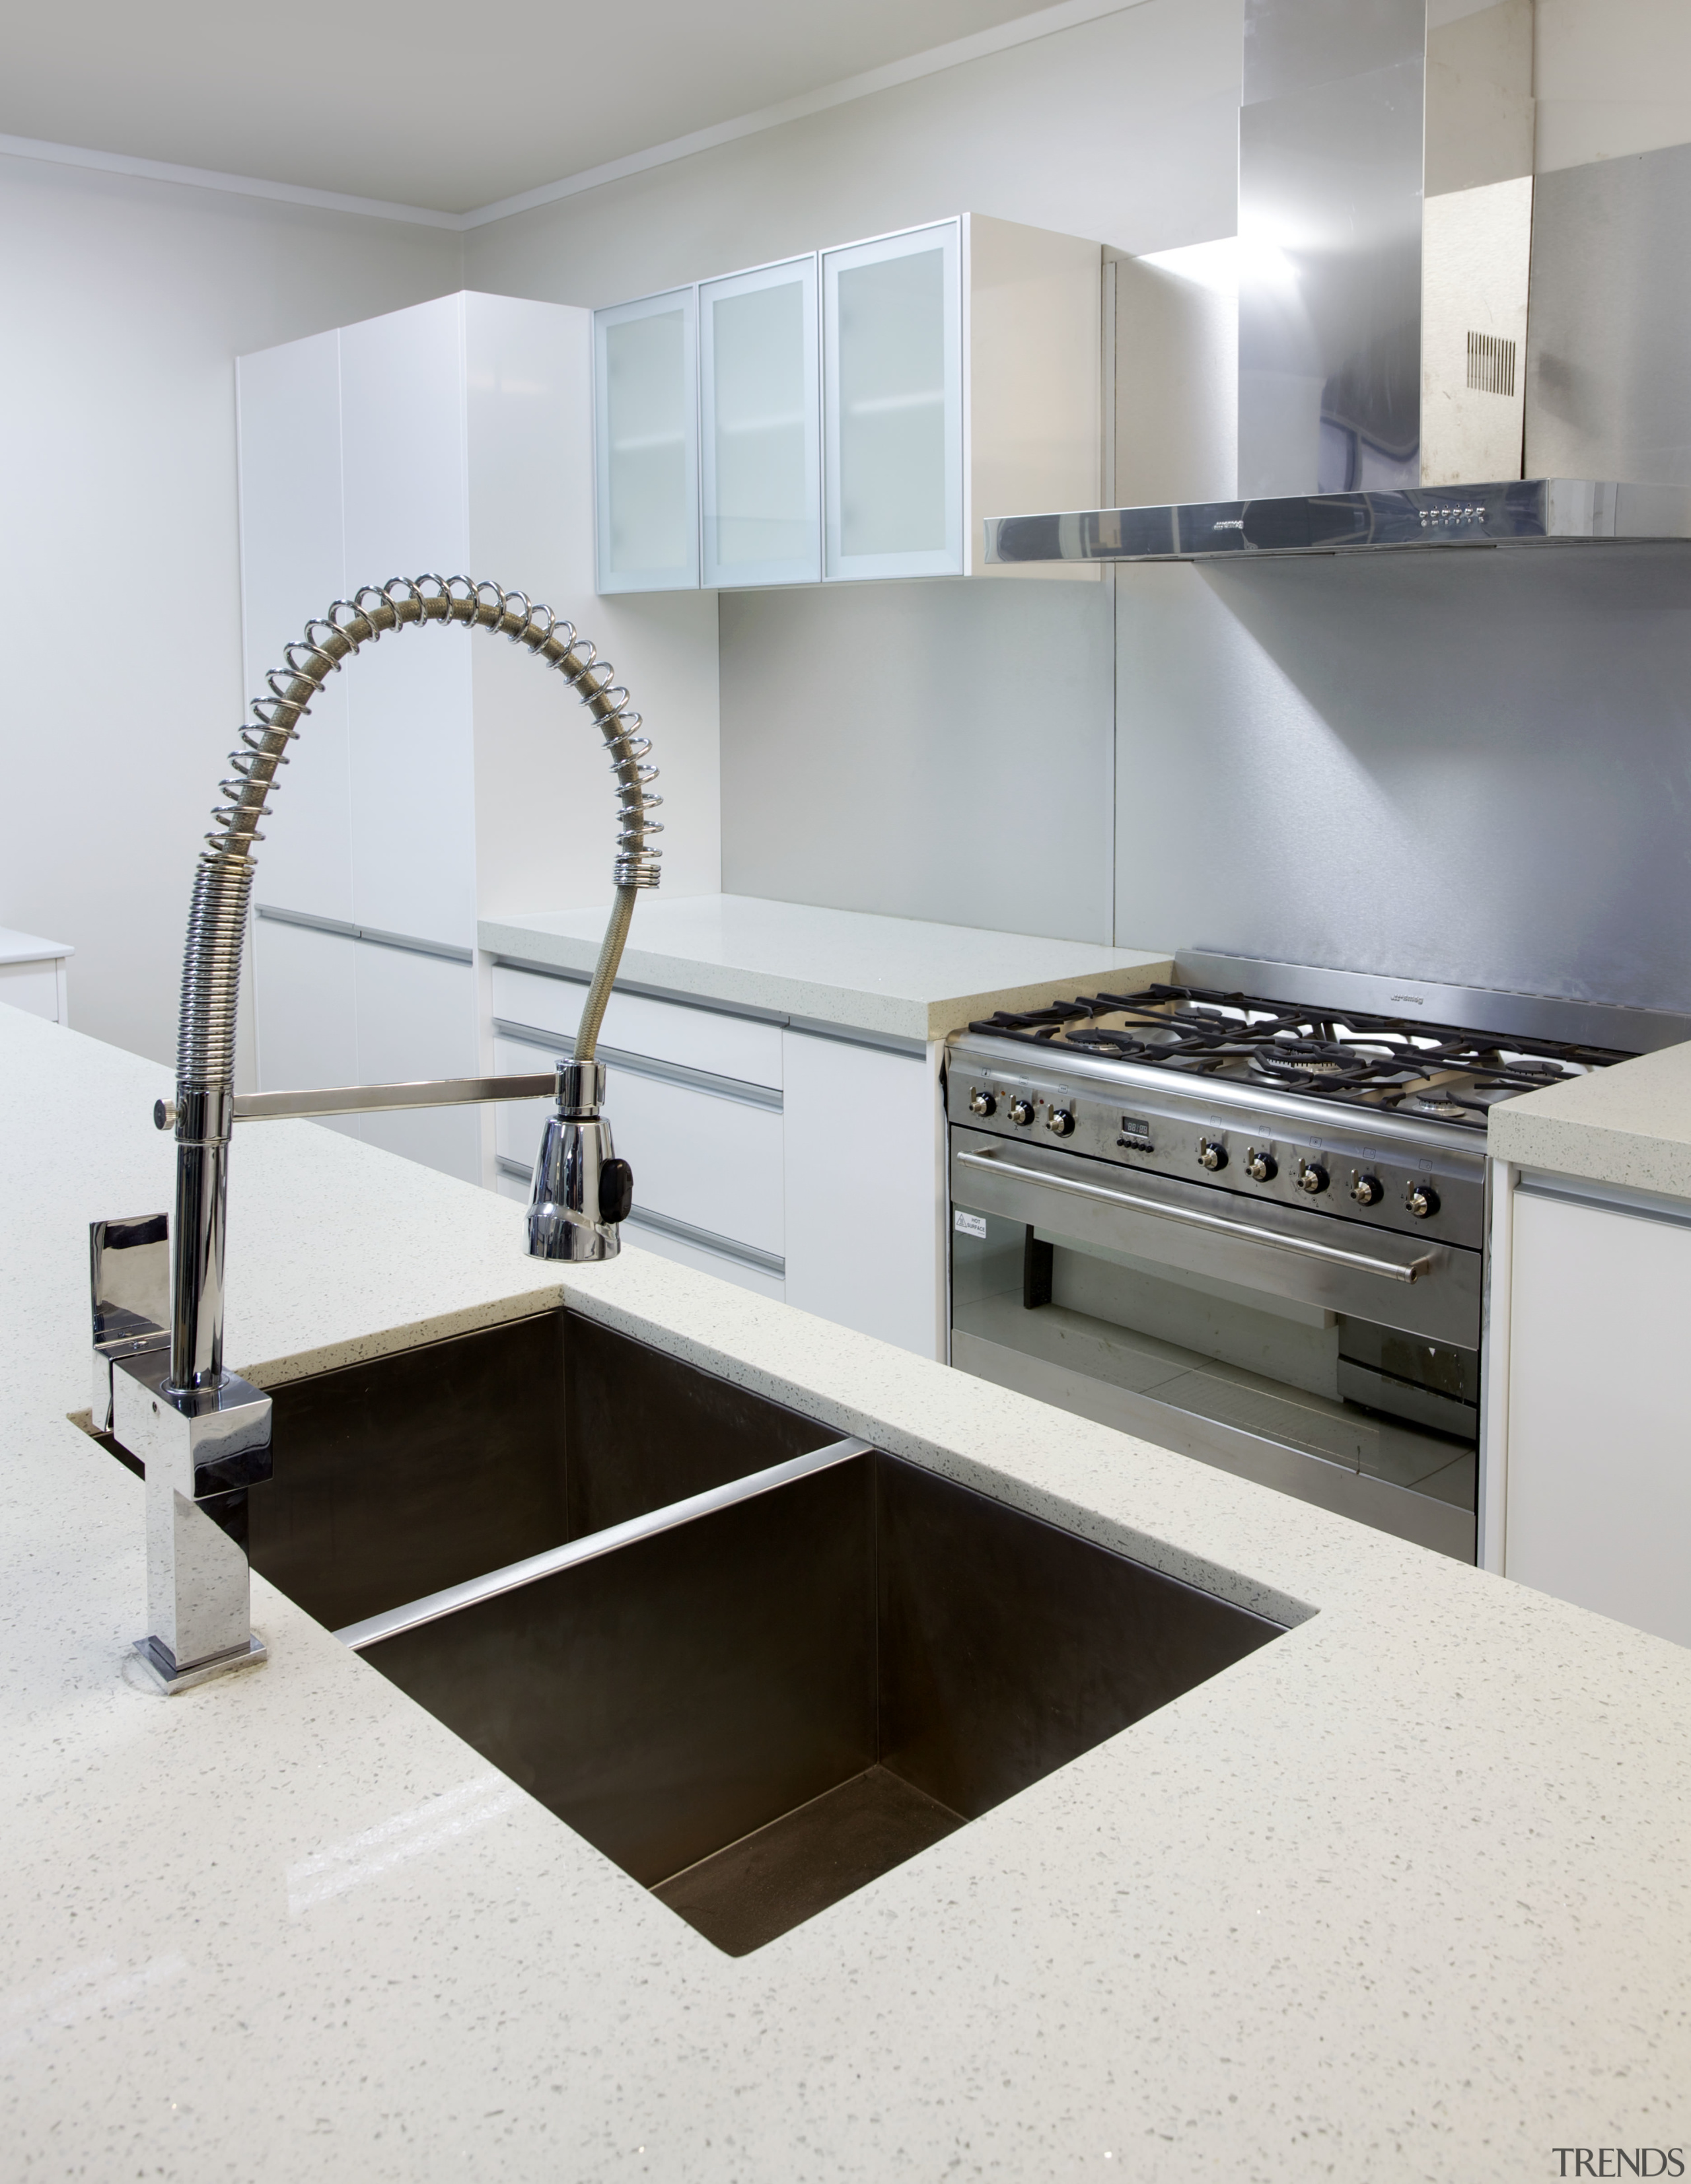 Undermounted Twin Stainless Steel Sinks Andh Indus Trends